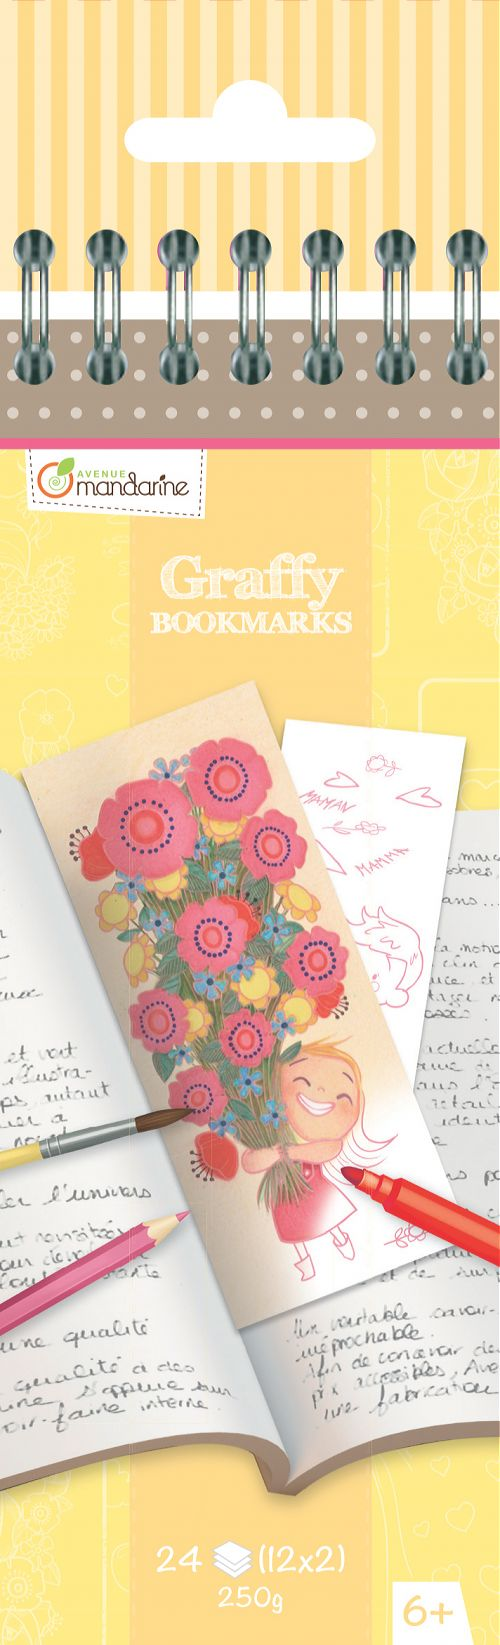 Marcapáginas para Colorear 'Madre' Graffy Bookmark Avenue Mandarine